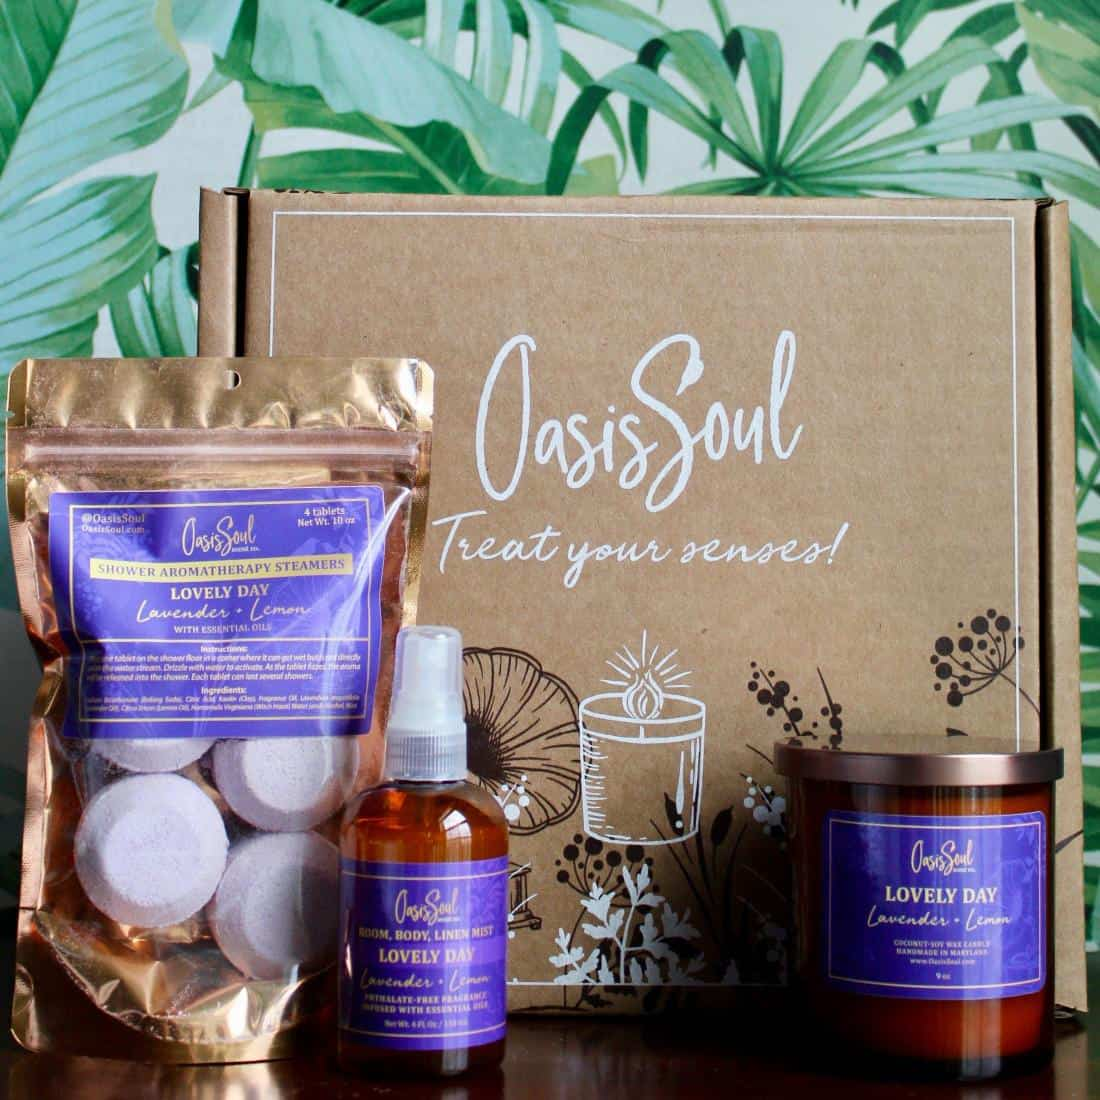 Oasis Soul Scent Co. crafts luxuriously scented candles and home & body treats with natural ingredients & lasting fragrances. Products are handmade with love in Maryland, USA.